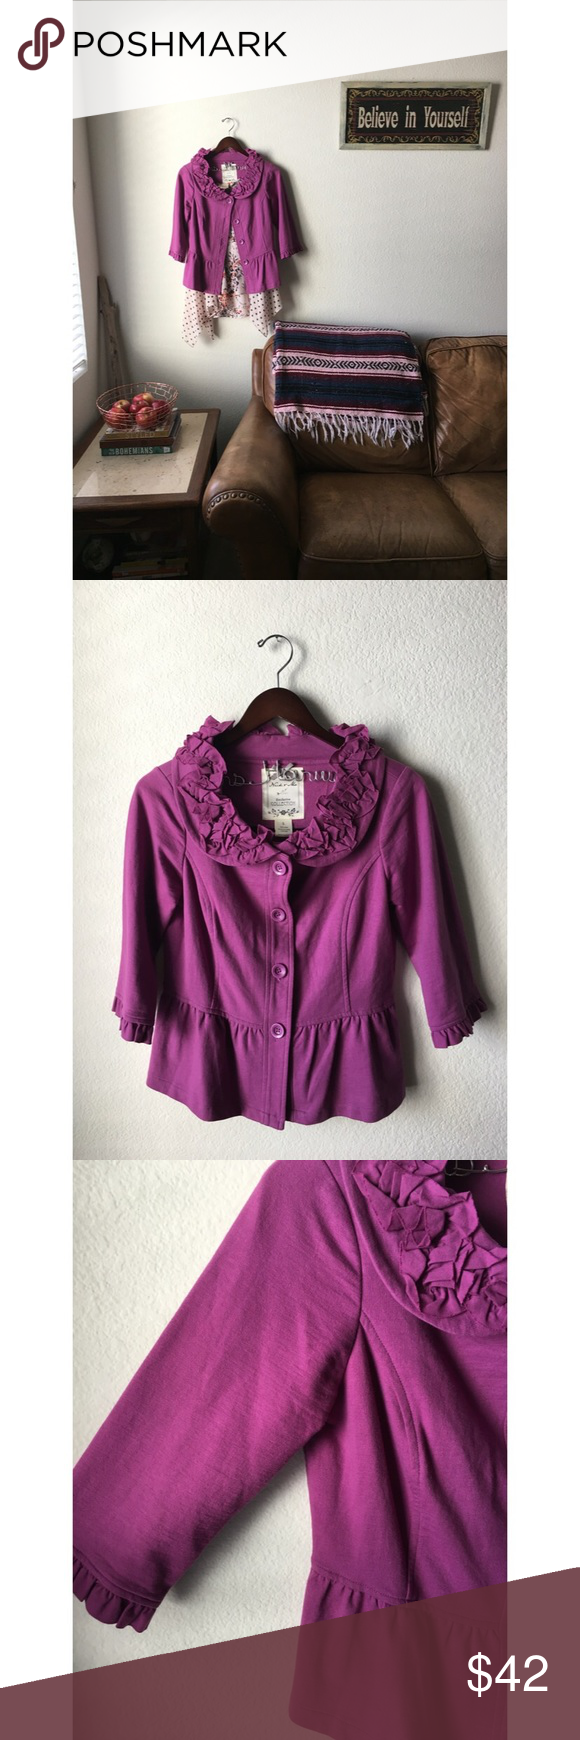 Anthropologie Orchid Jacket Exclusive Collection By: Nick & Mo. Bold in color and classic in design, this jacket is a 10. Size: S Dimensions; L: 21 B: 18. Fibers: 100% Cotton. Condition: EUC Anthropologie Jackets & Coats